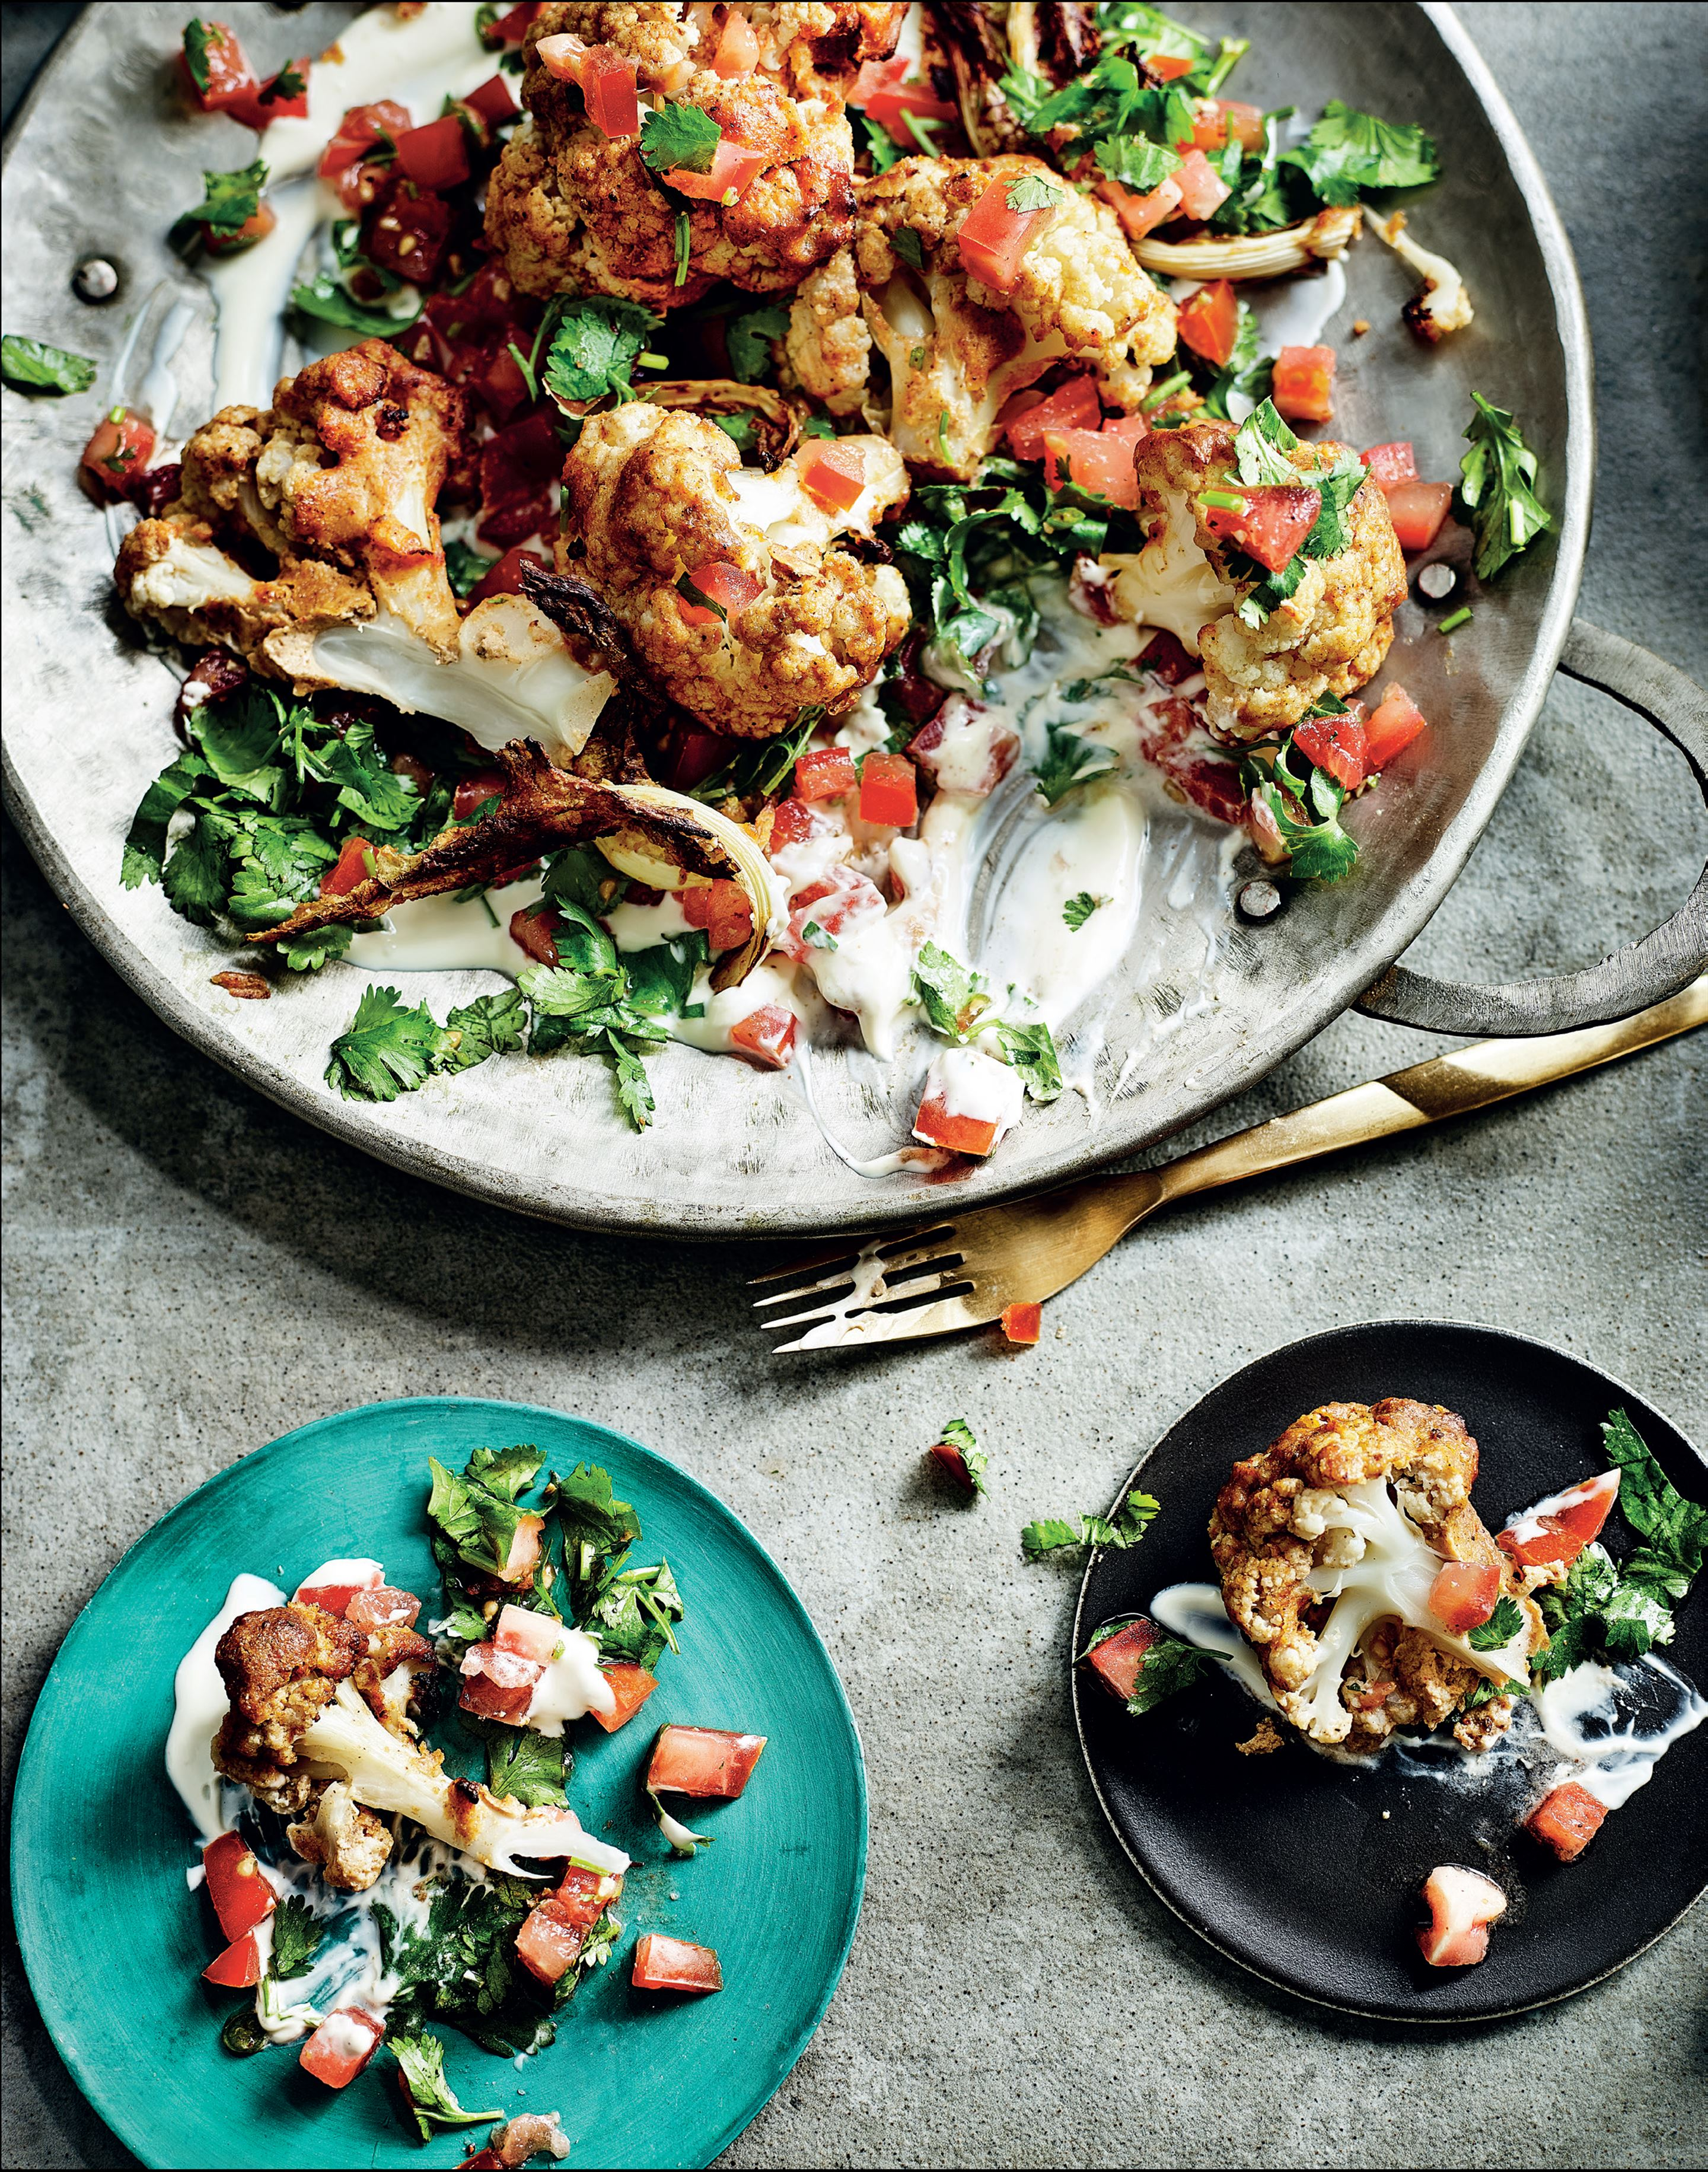 Tandoori cauliflower, my way